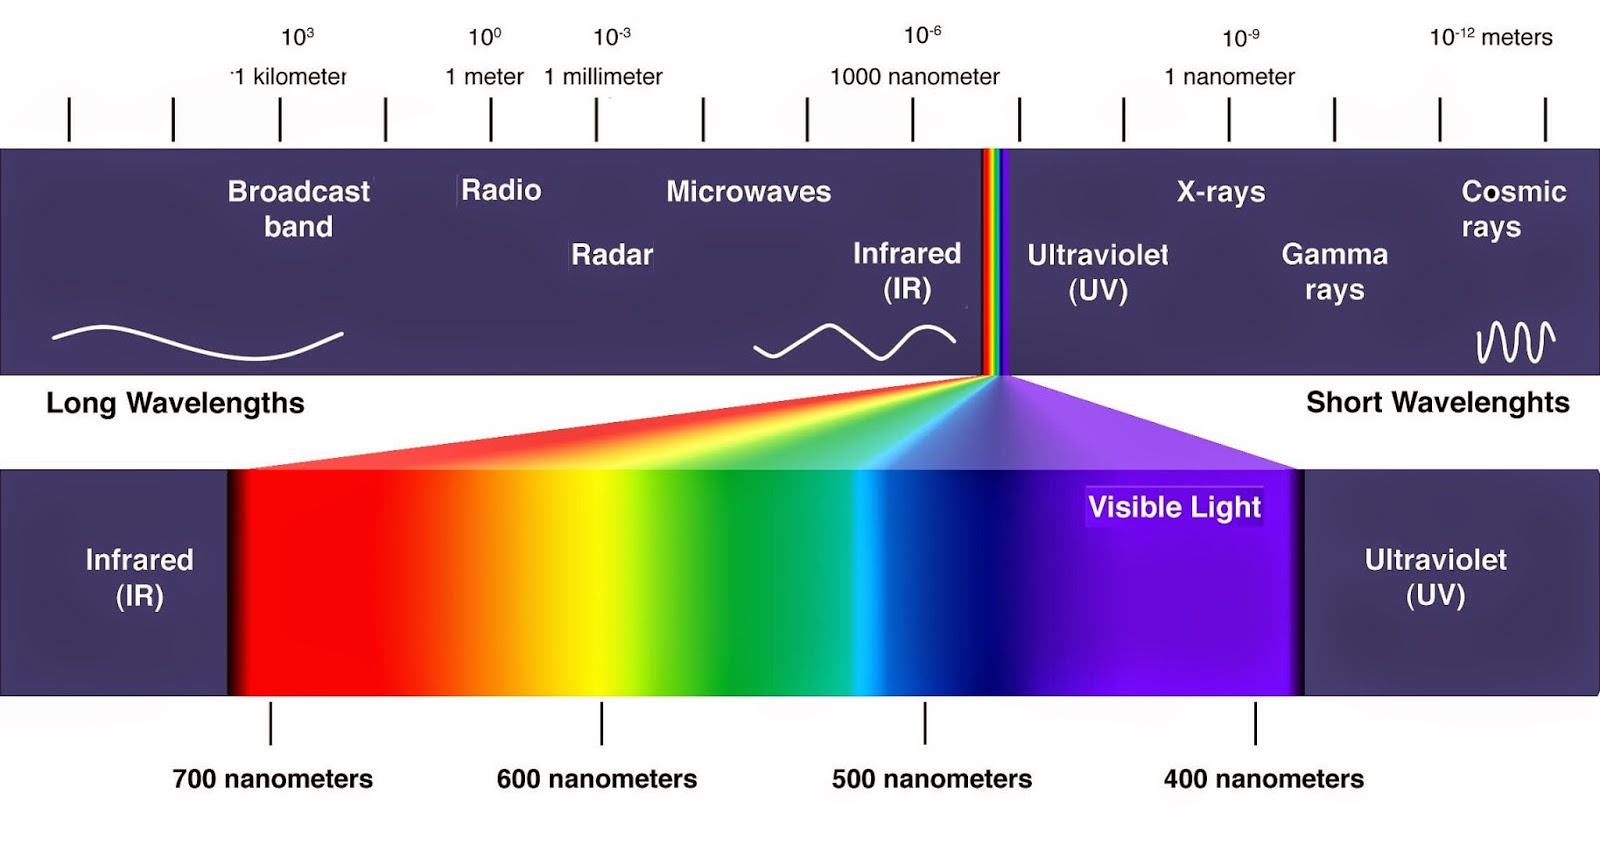 Pin by notes on color on spectral distribution charts pinterest pin by notes on color on spectral distribution charts pinterest color wavelengths and electromagnetic spectrum nvjuhfo Images